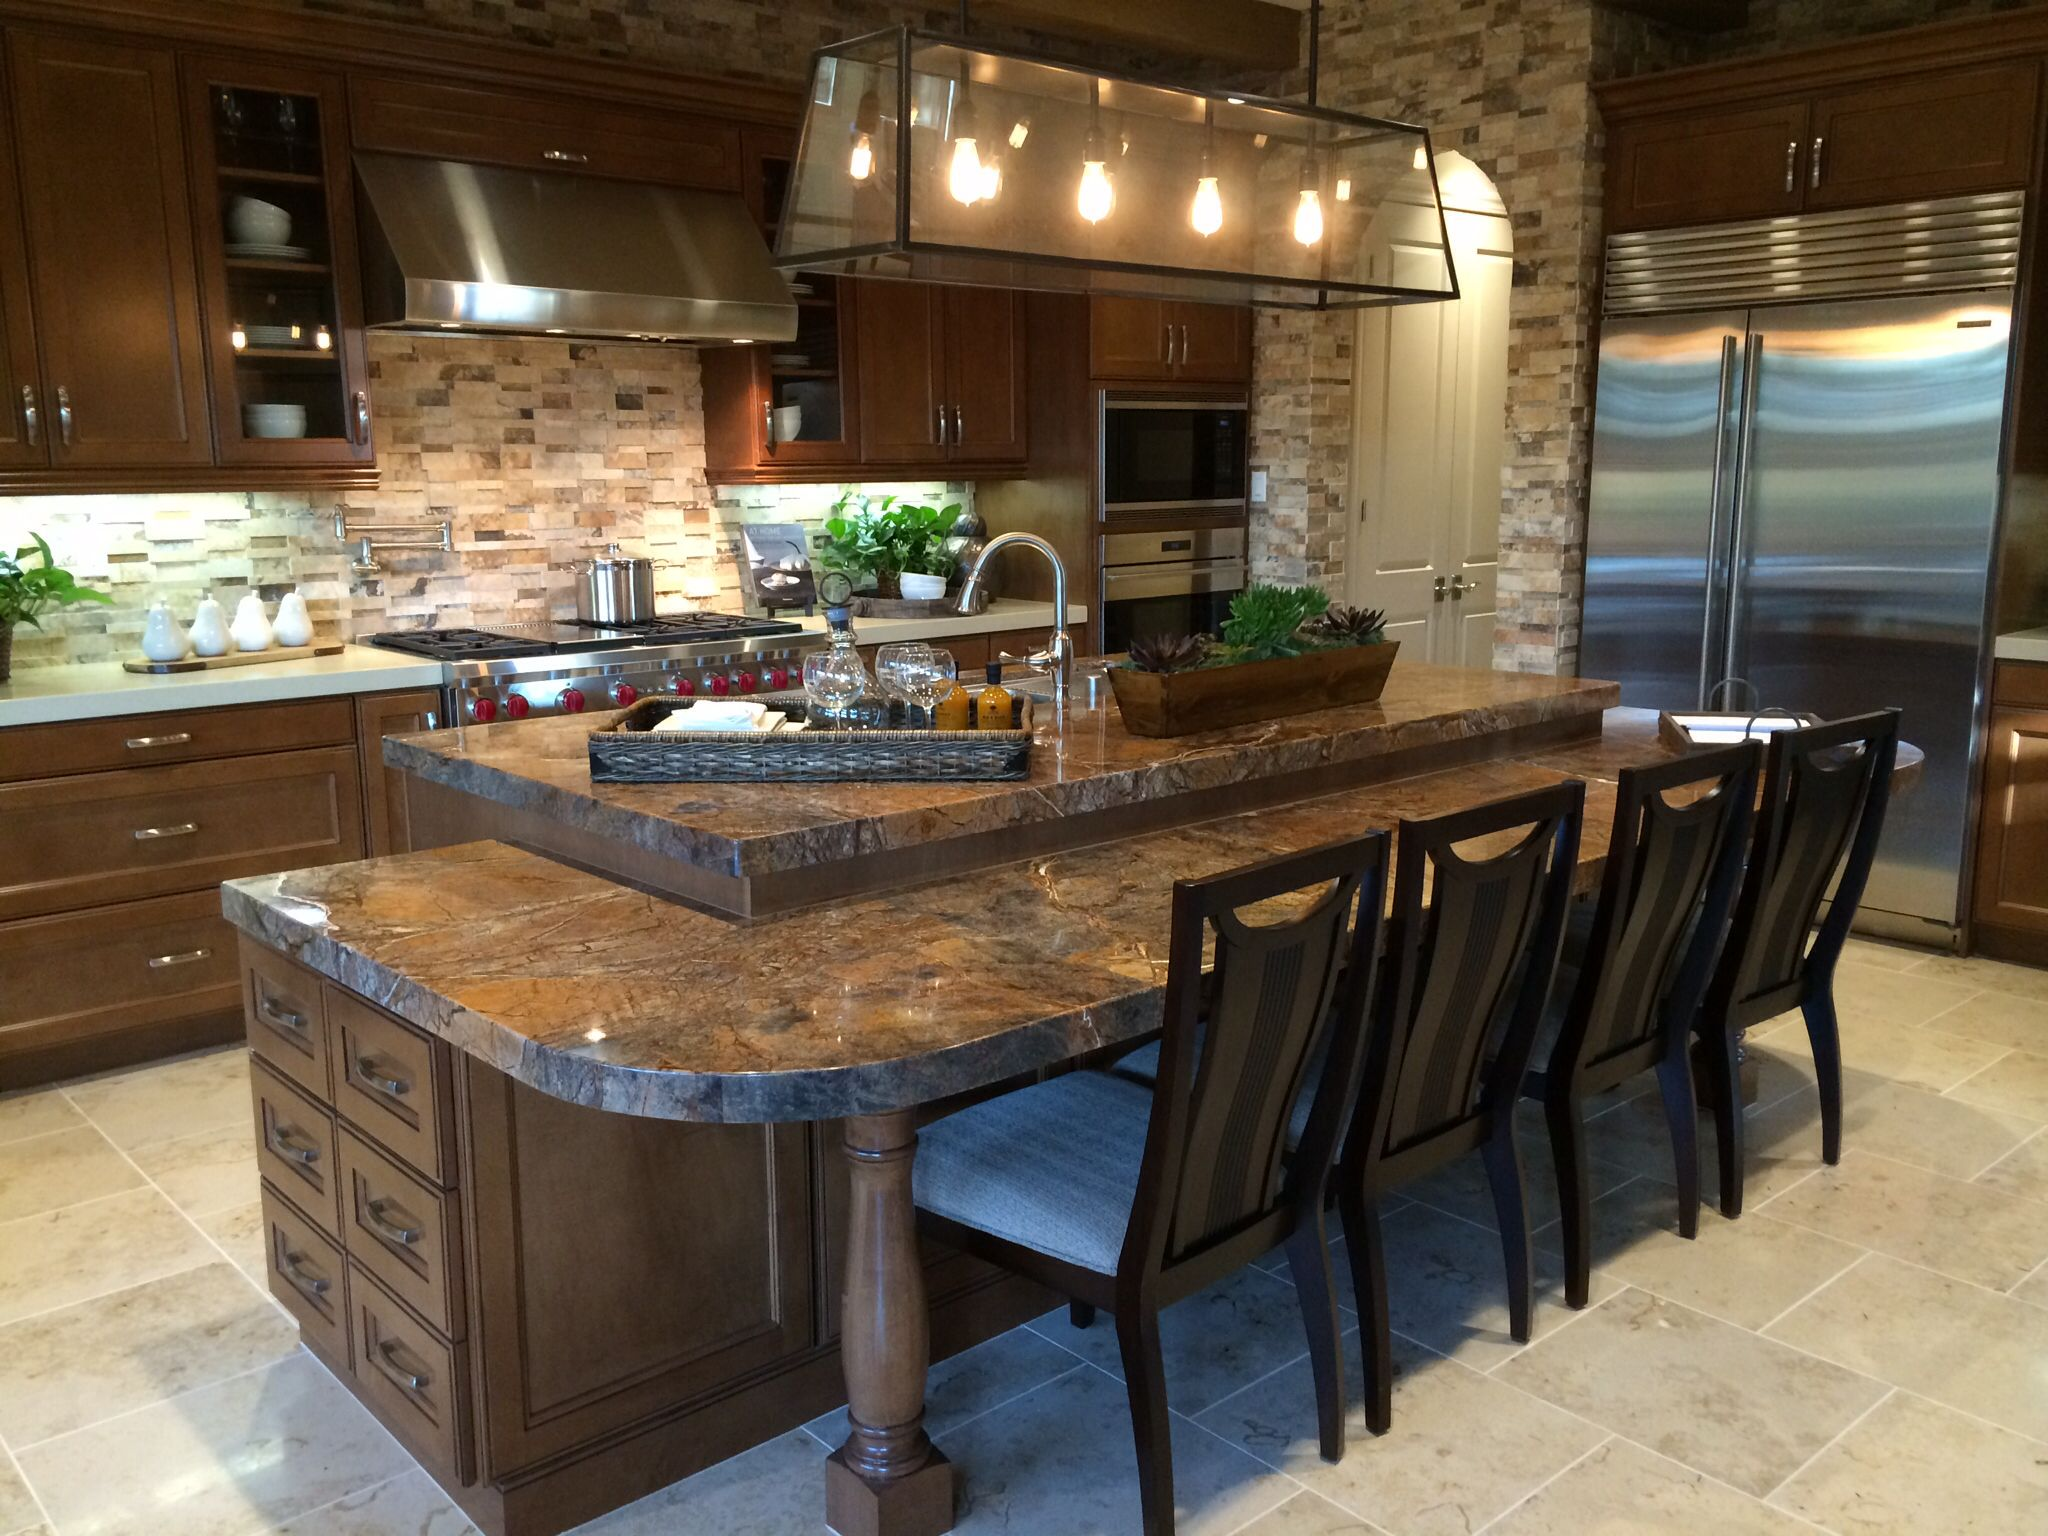 I like this kitchen island size and layout that can seat 4 6